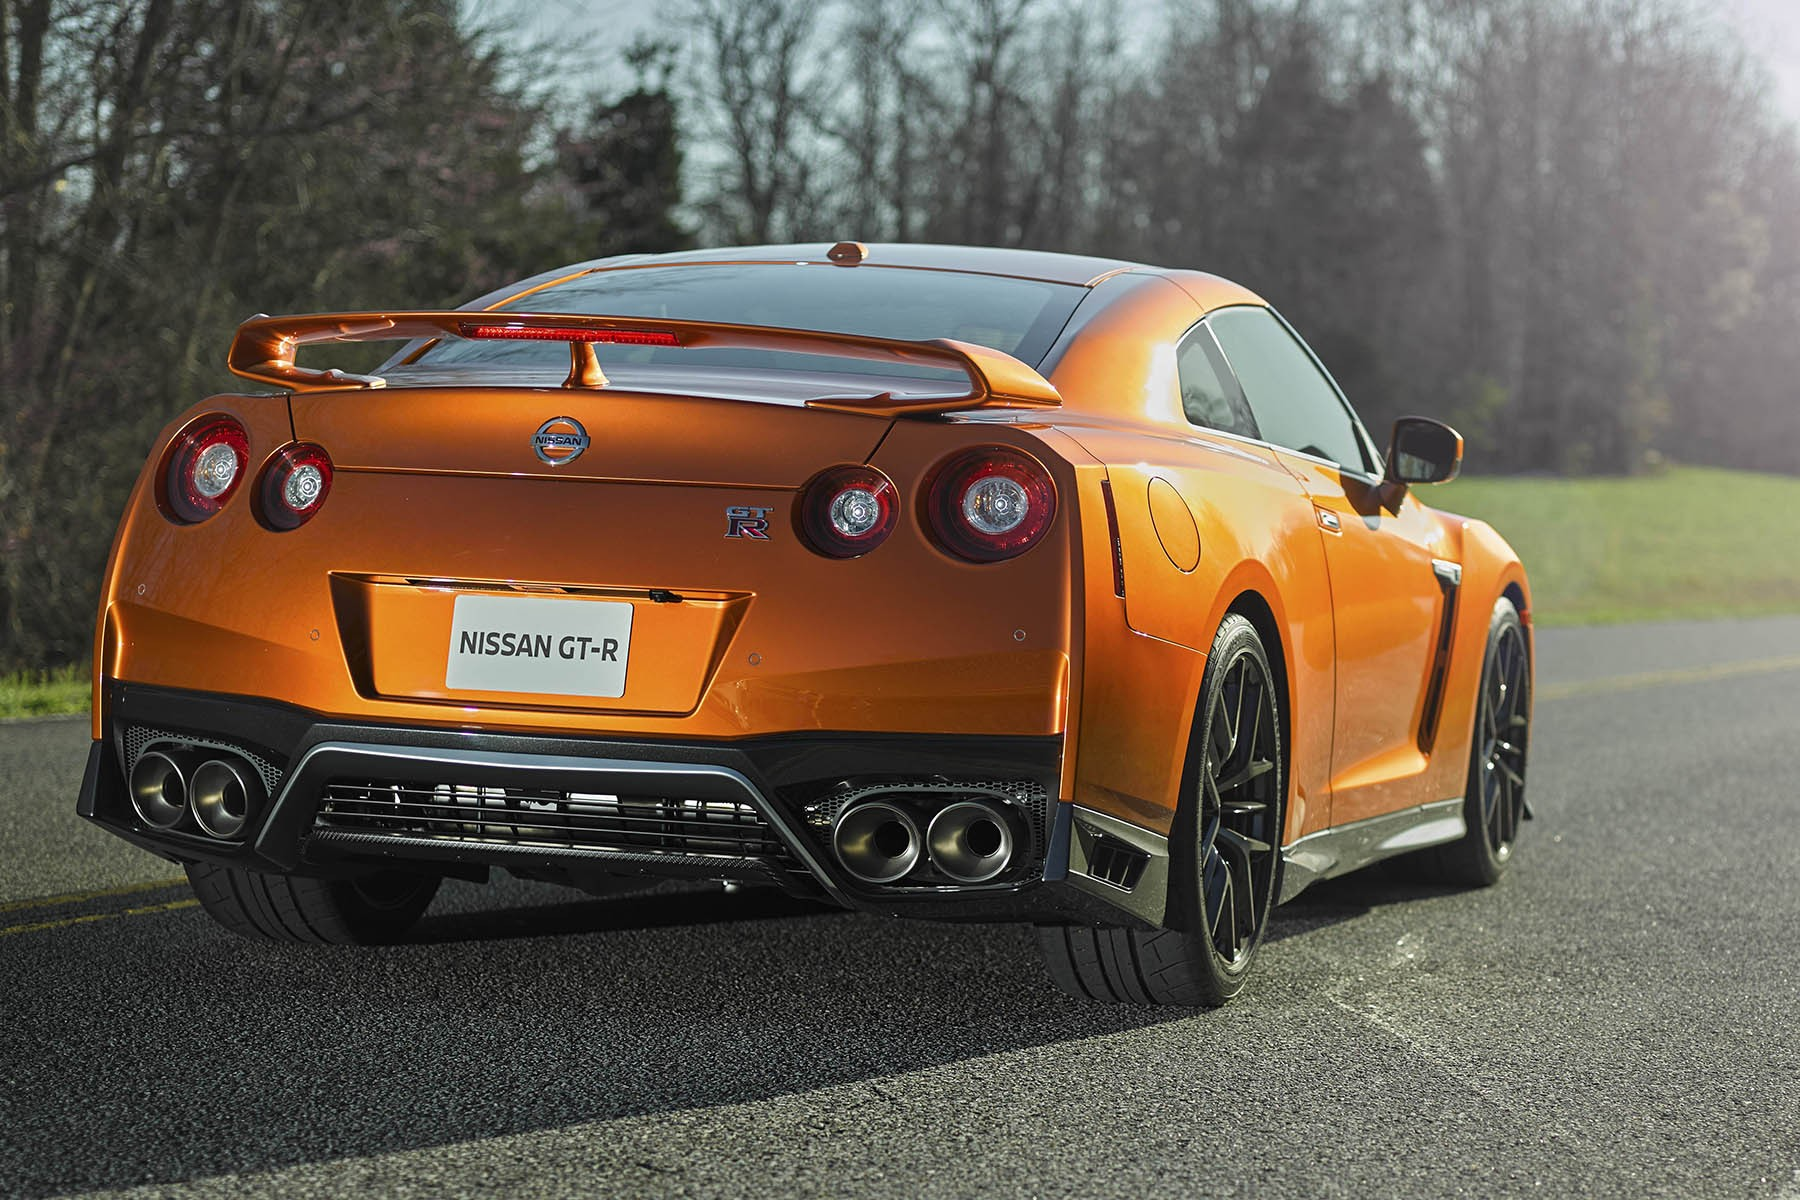 nouvelle nissan gt r avec v6 de 570 ch actualit auto forum autobip. Black Bedroom Furniture Sets. Home Design Ideas